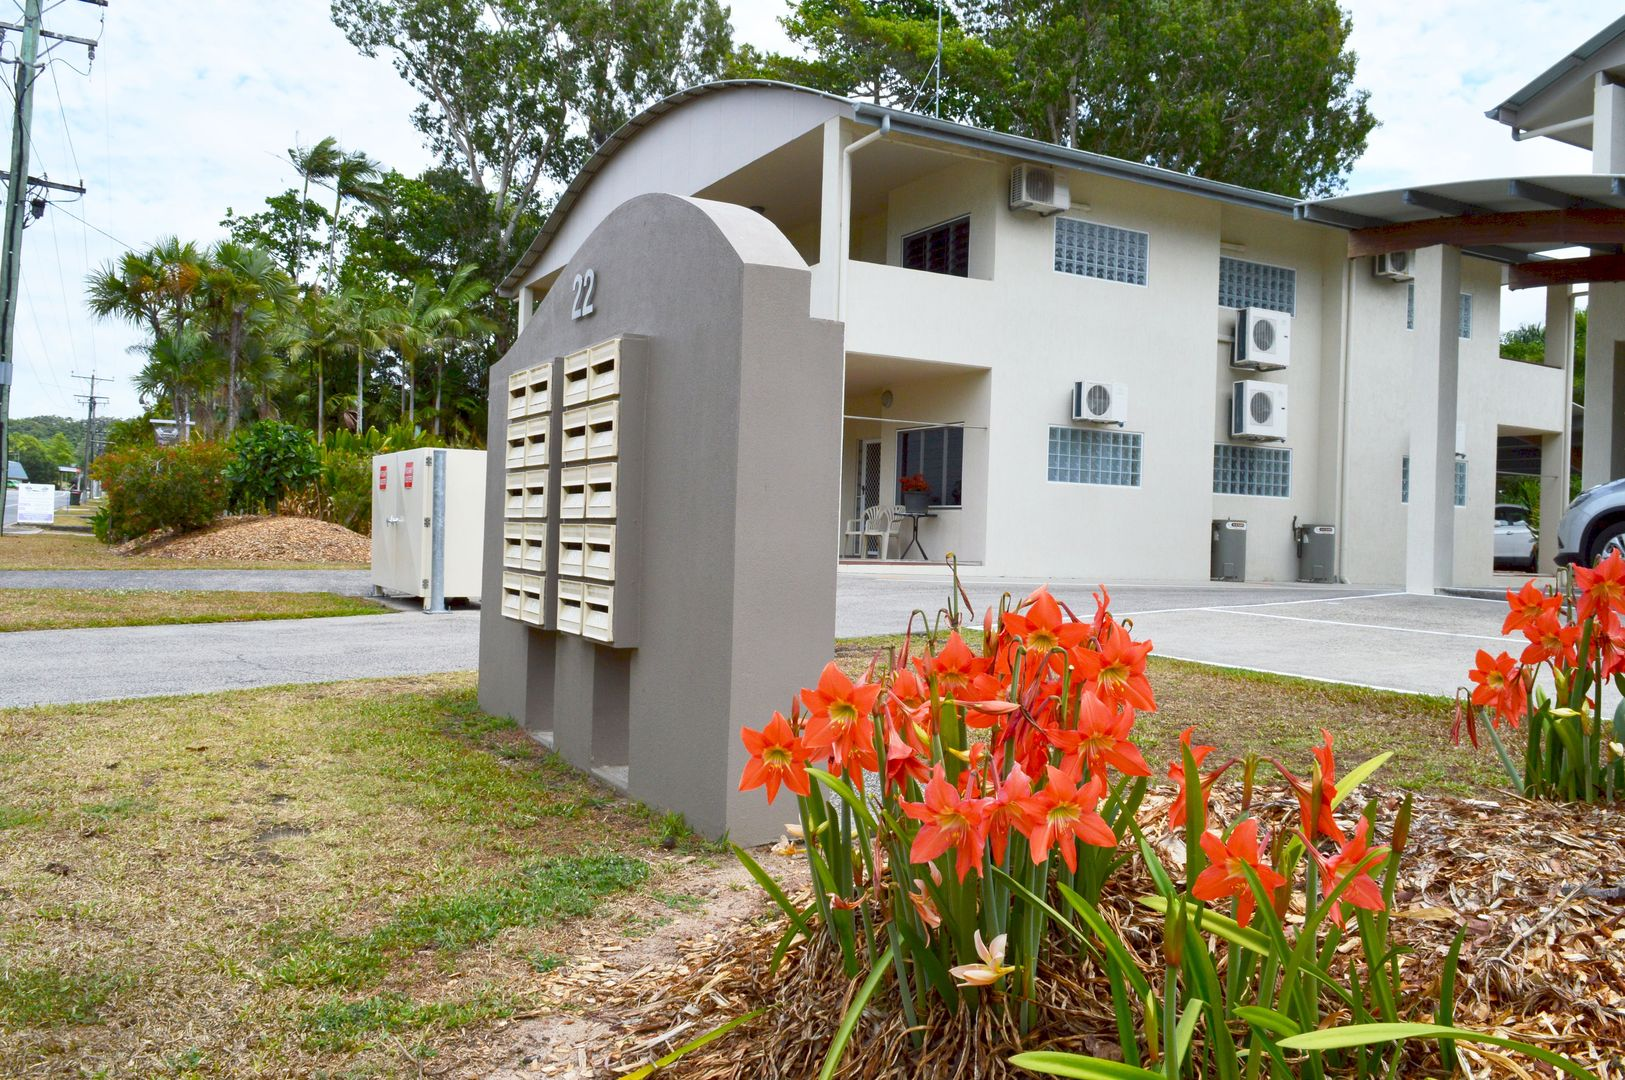 19/22 Wongaling Beach Road, Wongaling Beach QLD 4852, Image 0